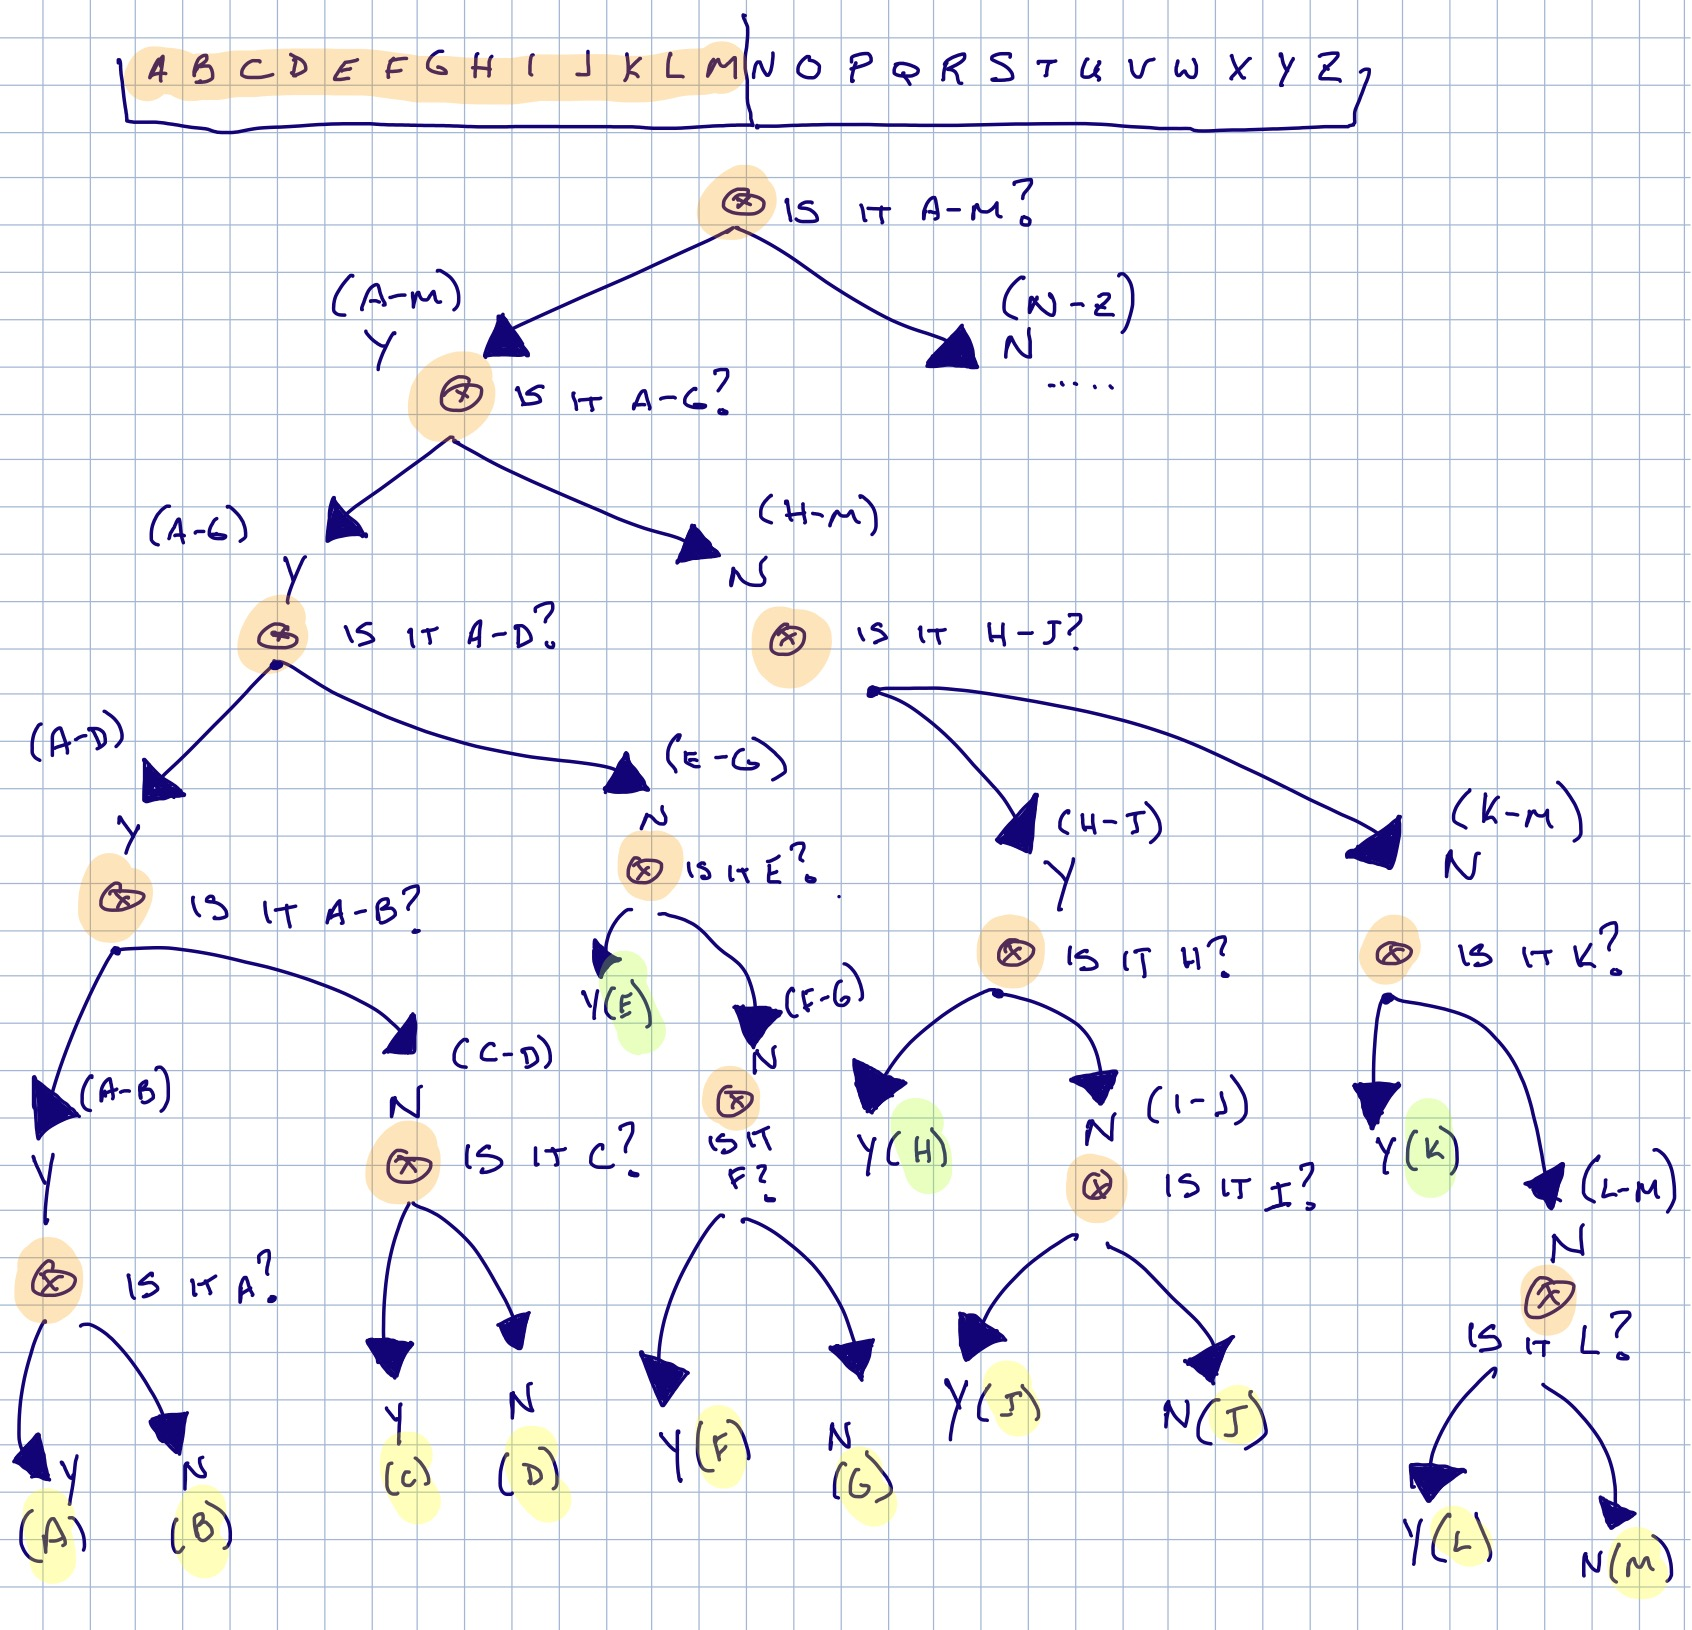 Information Entropy Decision Tree